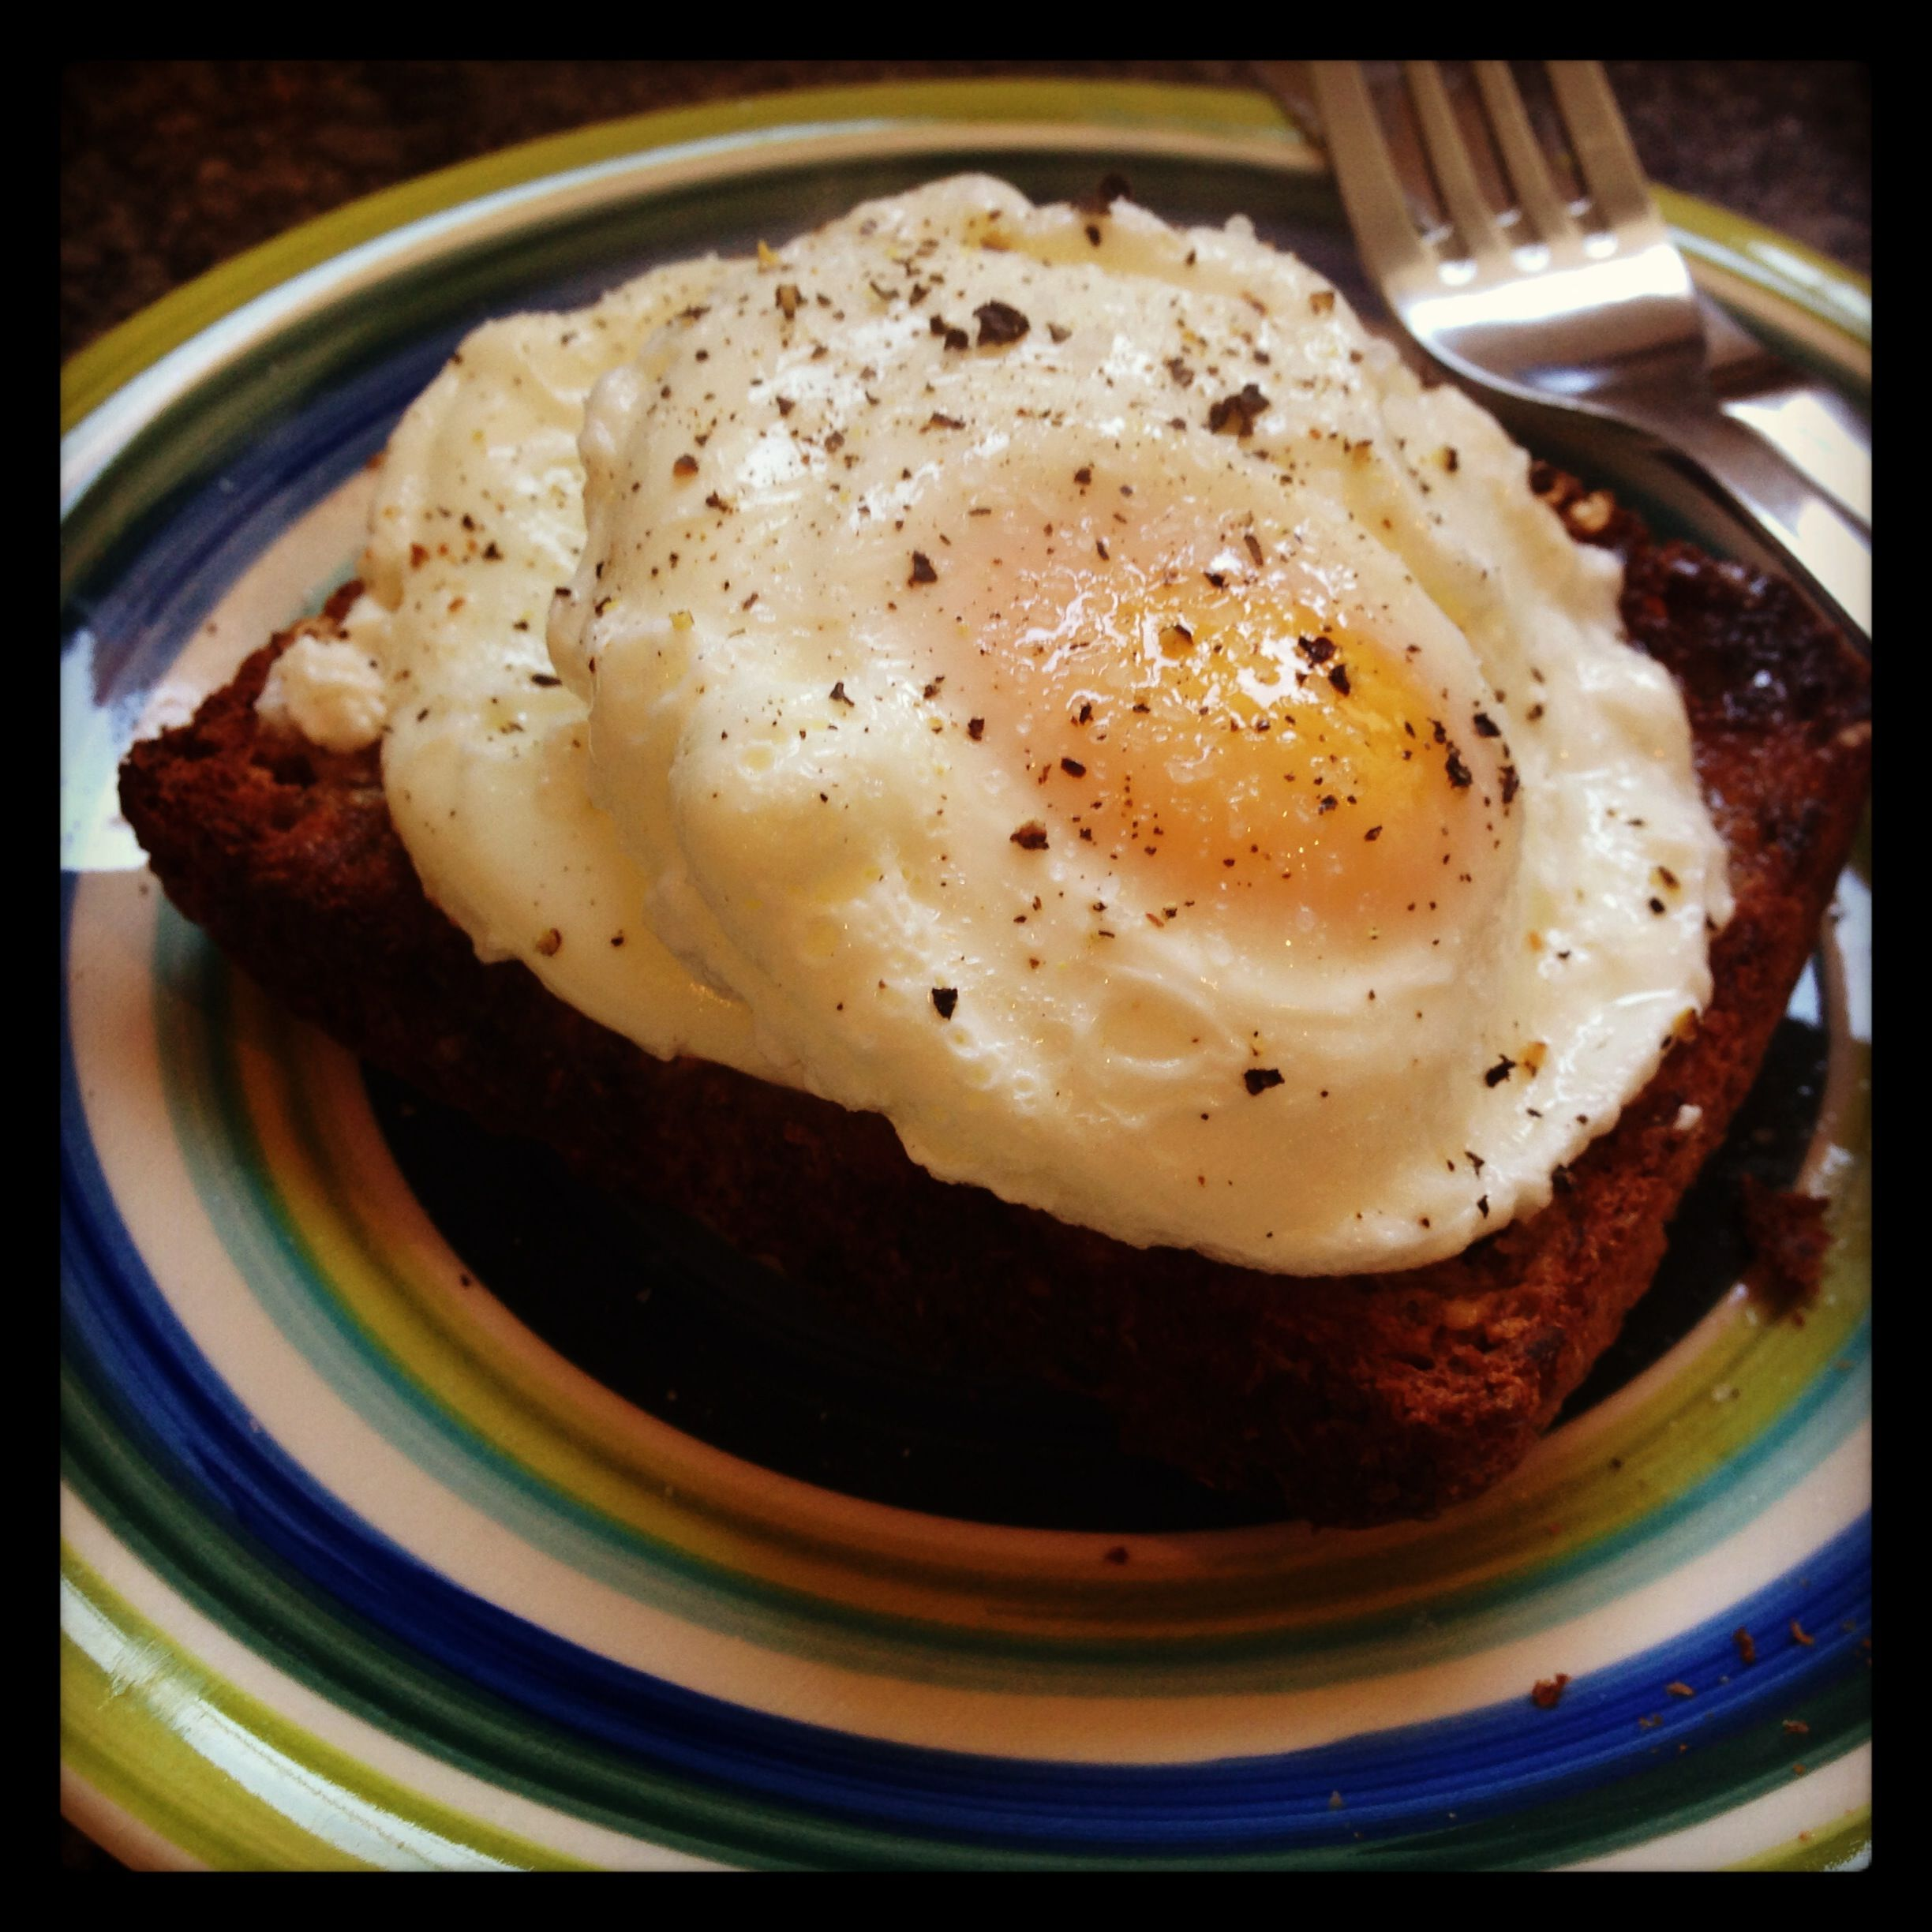 Poached eggs: so easily done in the microwave...one at a time place in a bowl with 1/3 cup water and 1tsp vinegar. Cook on high for 1 - 2 mins (check every 20 seconds).